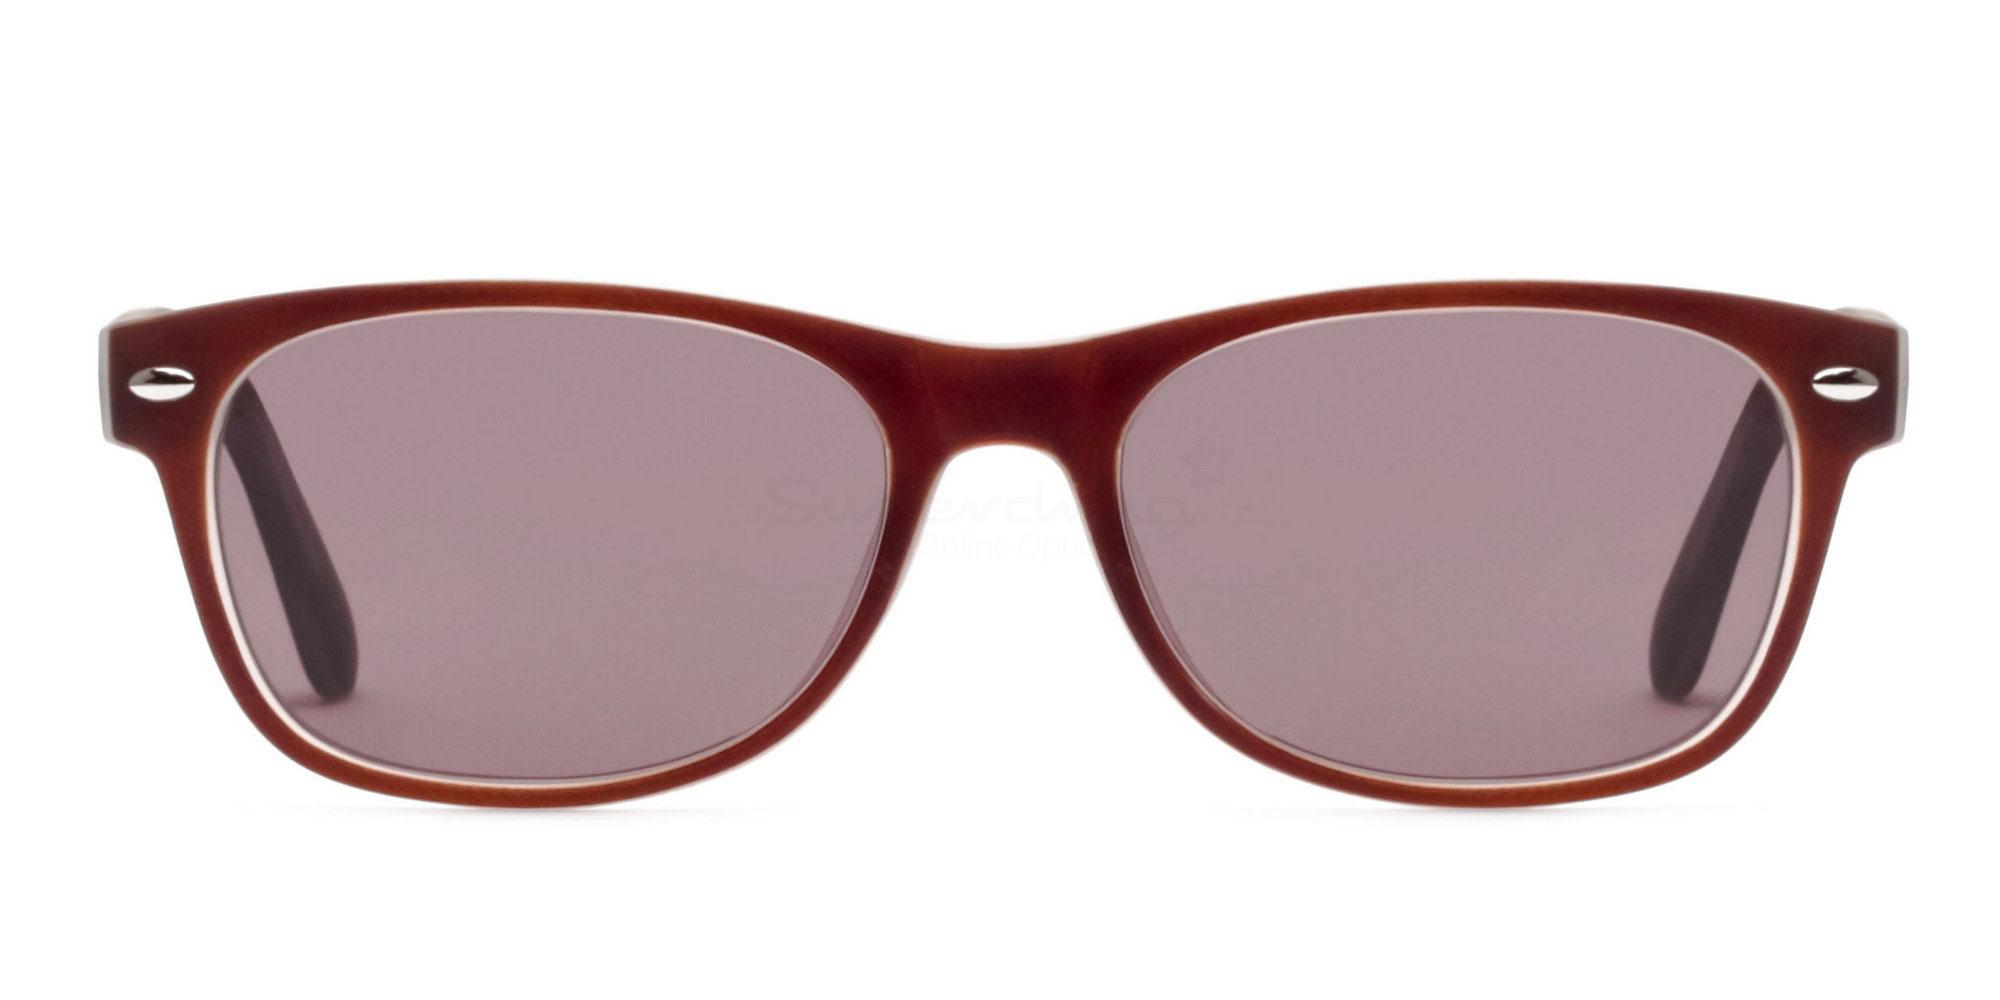 Brown S8122 - Brown (Sunglasses) Sunglasses, Helium